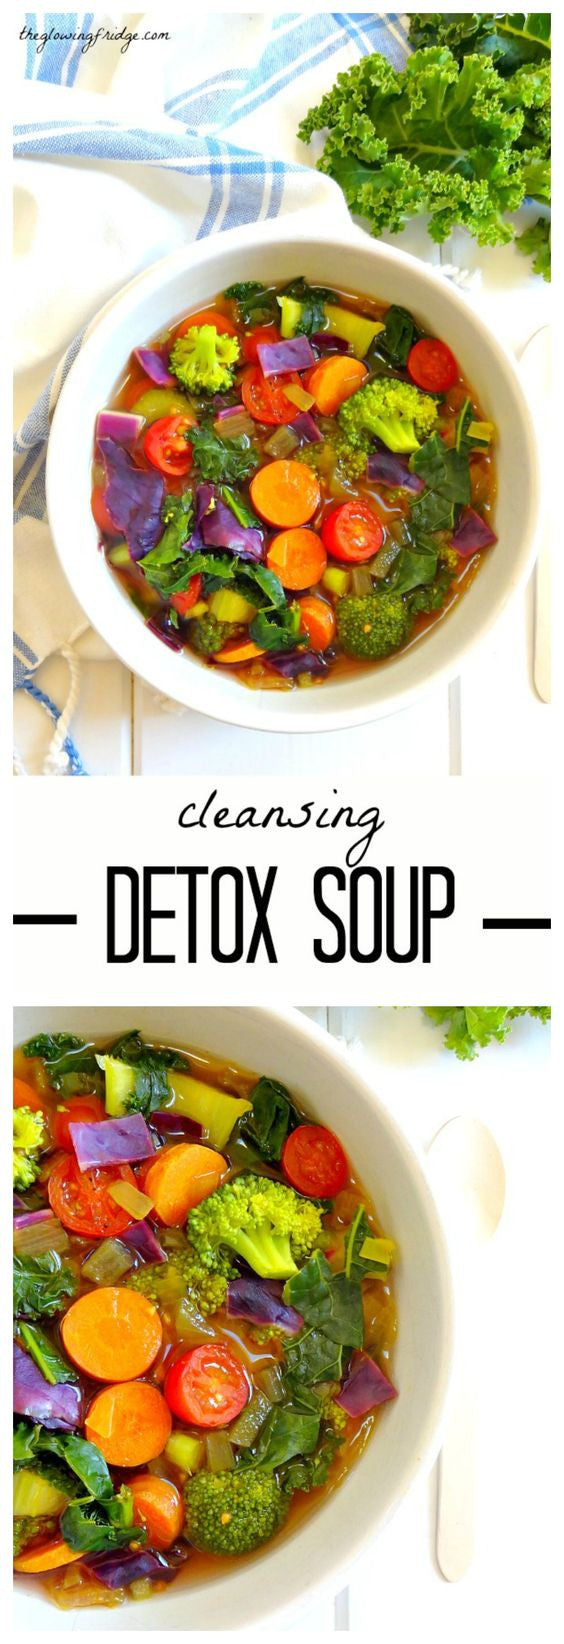 Cleansing Detox Soup to Boost Health!